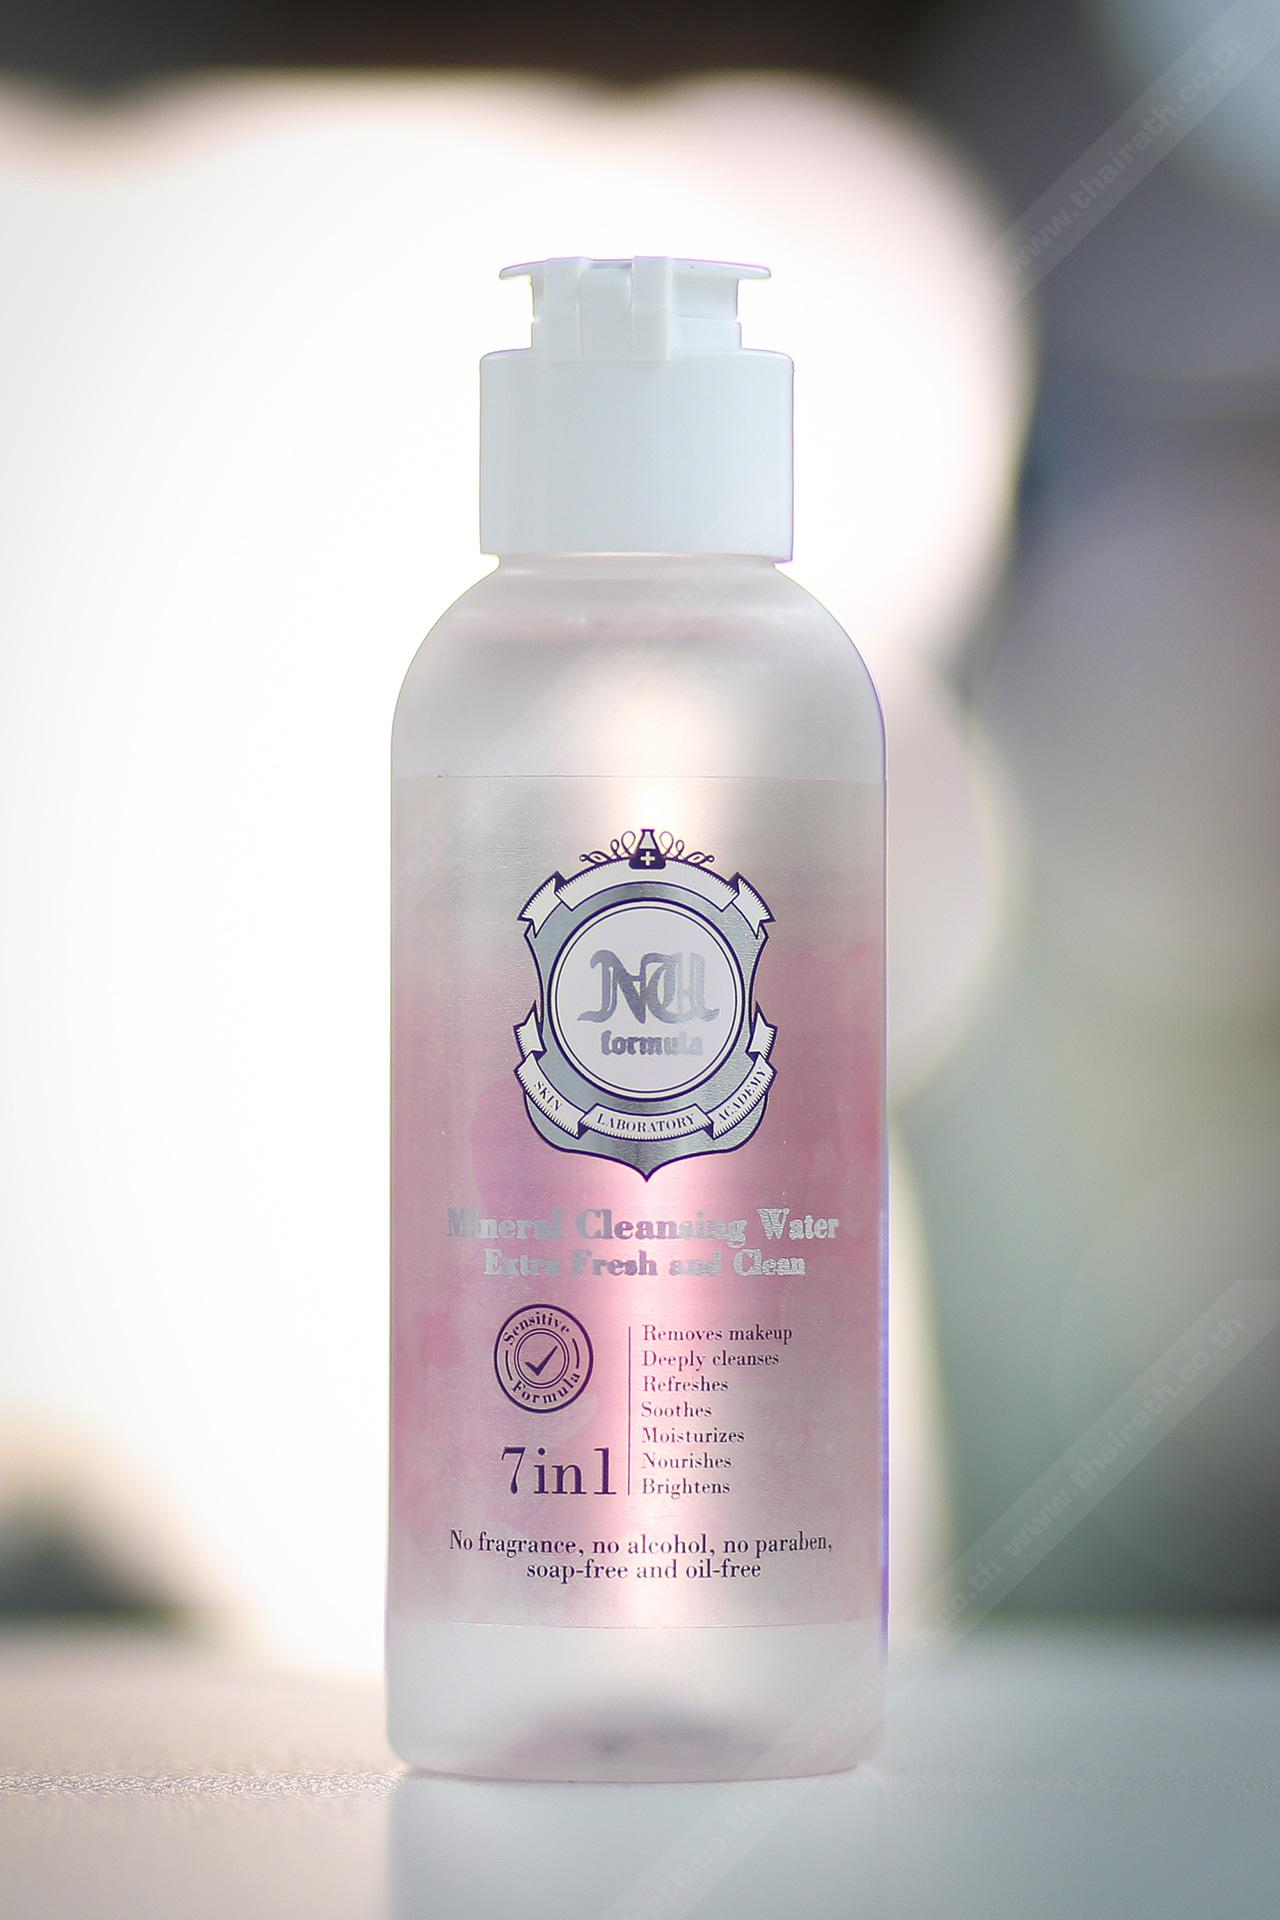 Nu Formula Mineral Cleansing Water Extra Fresh & Clean